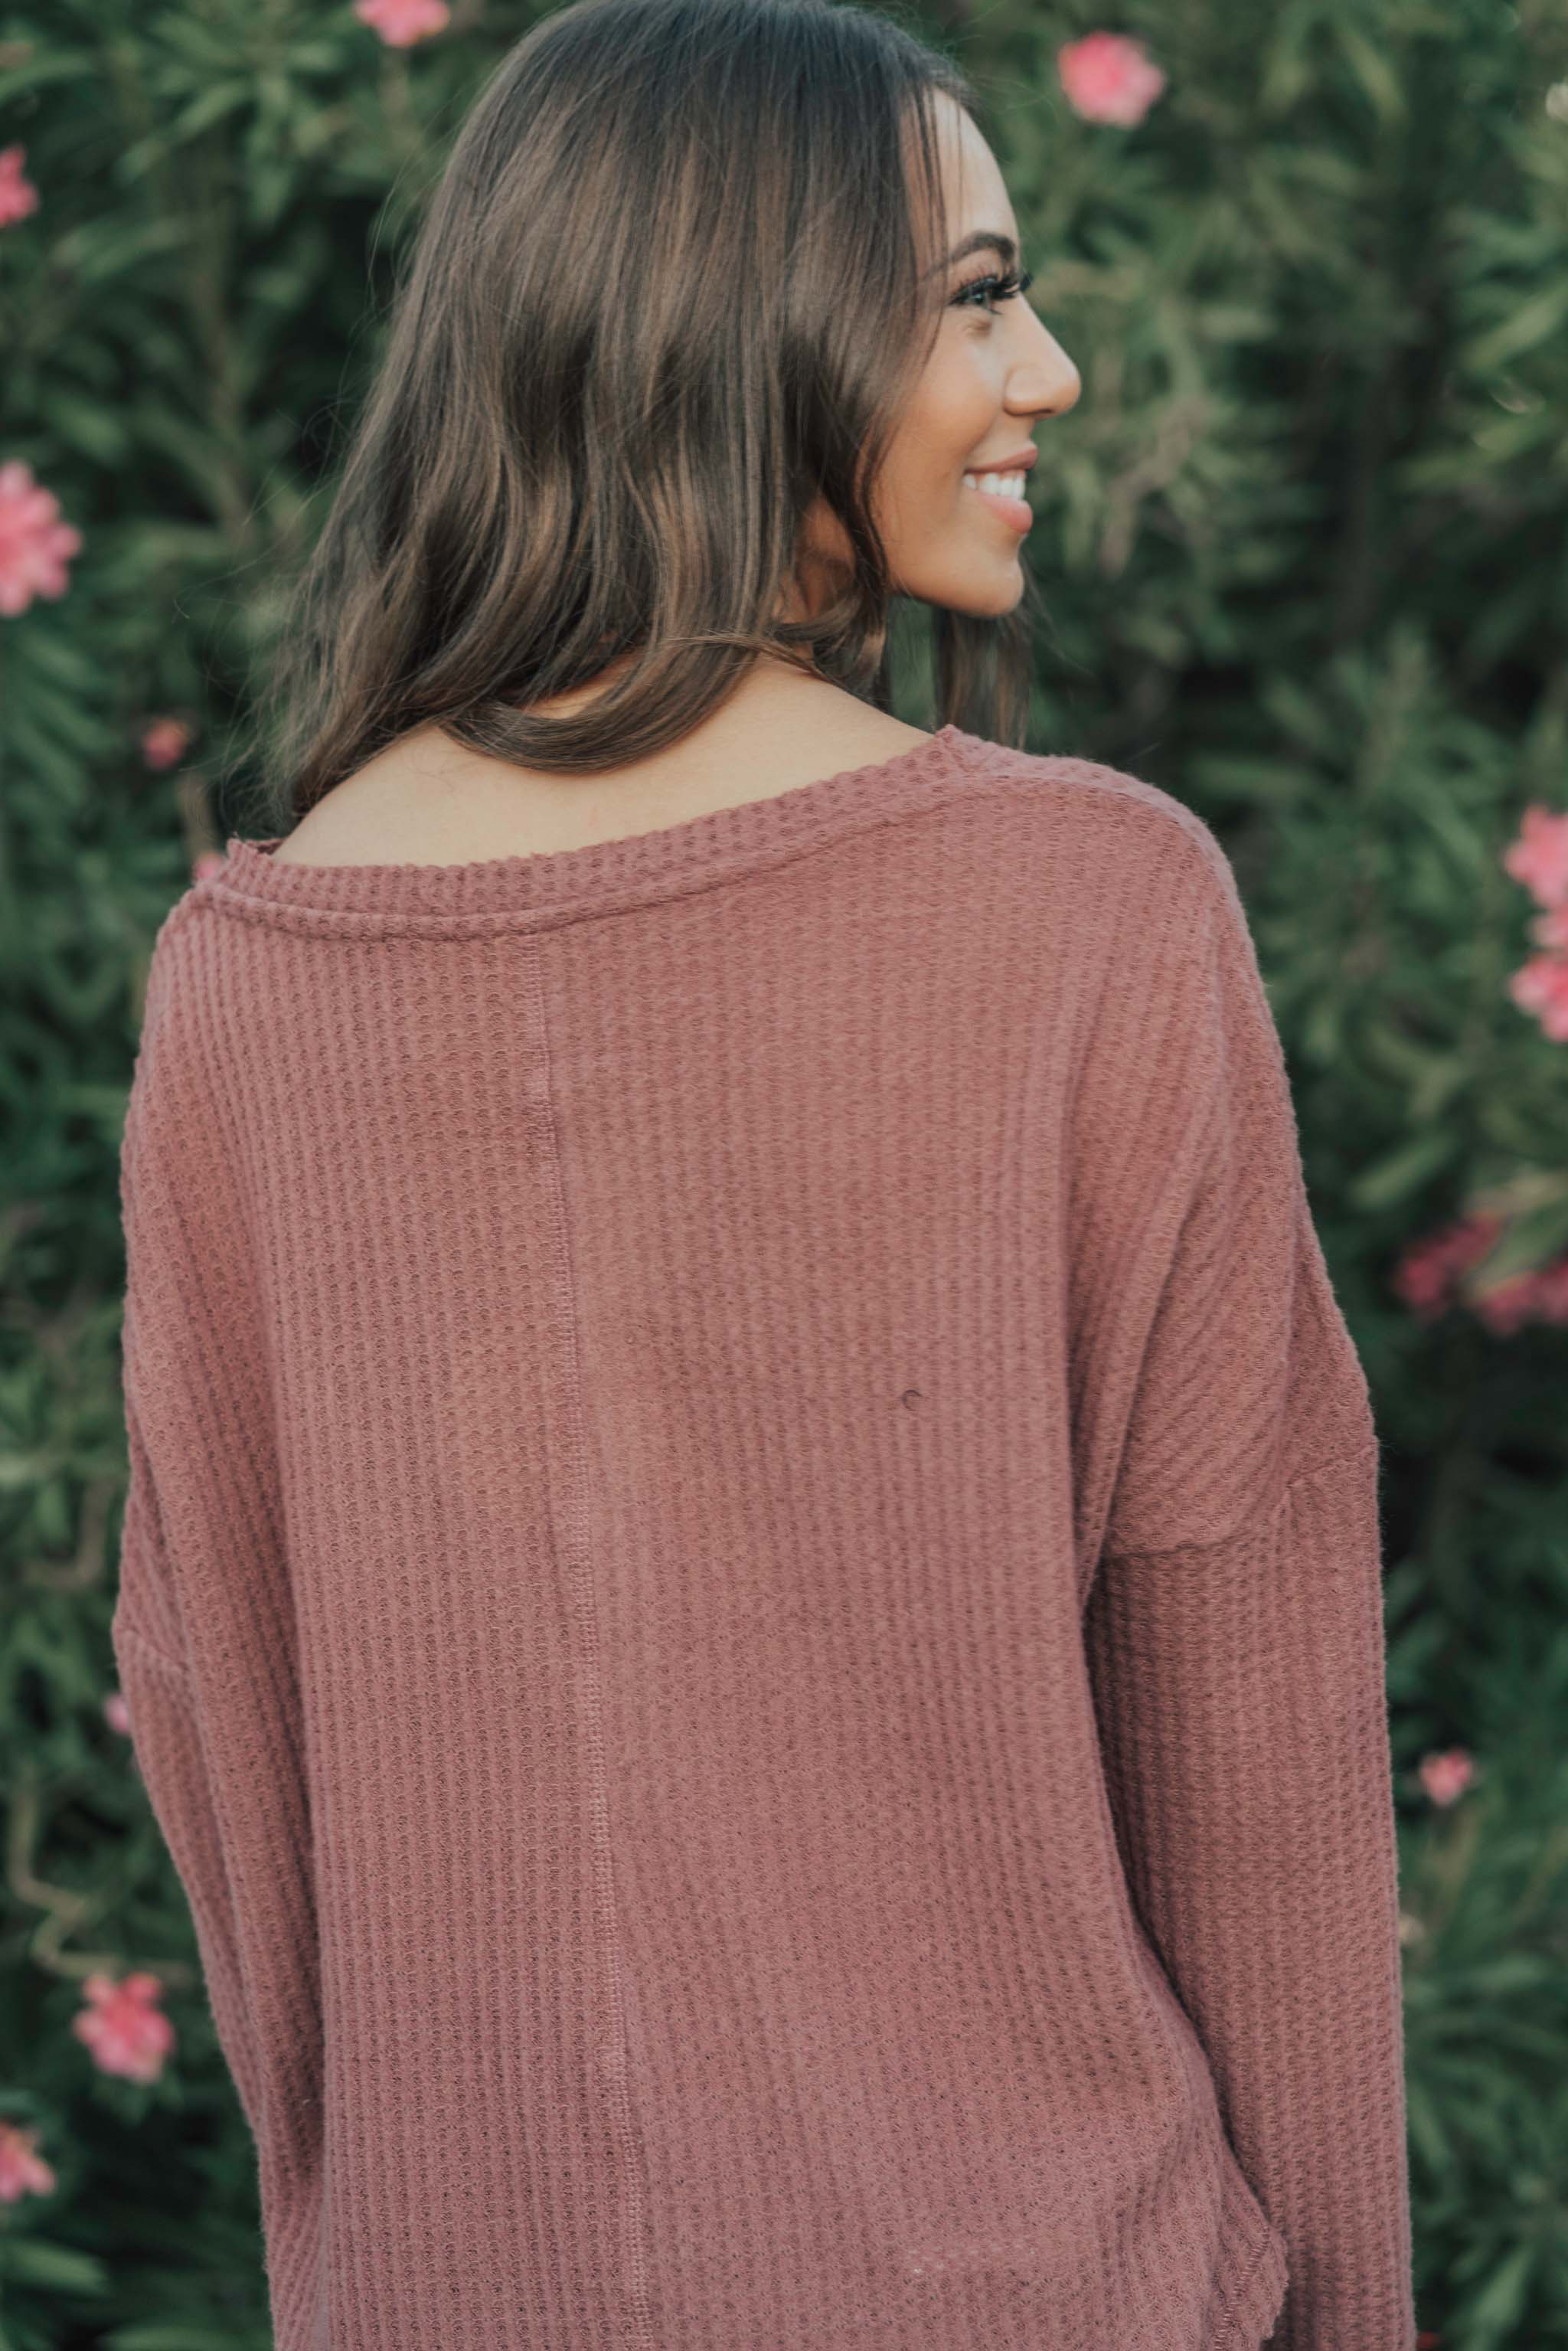 THE JORY WAFFLE KNIT TOP IN MAUVE